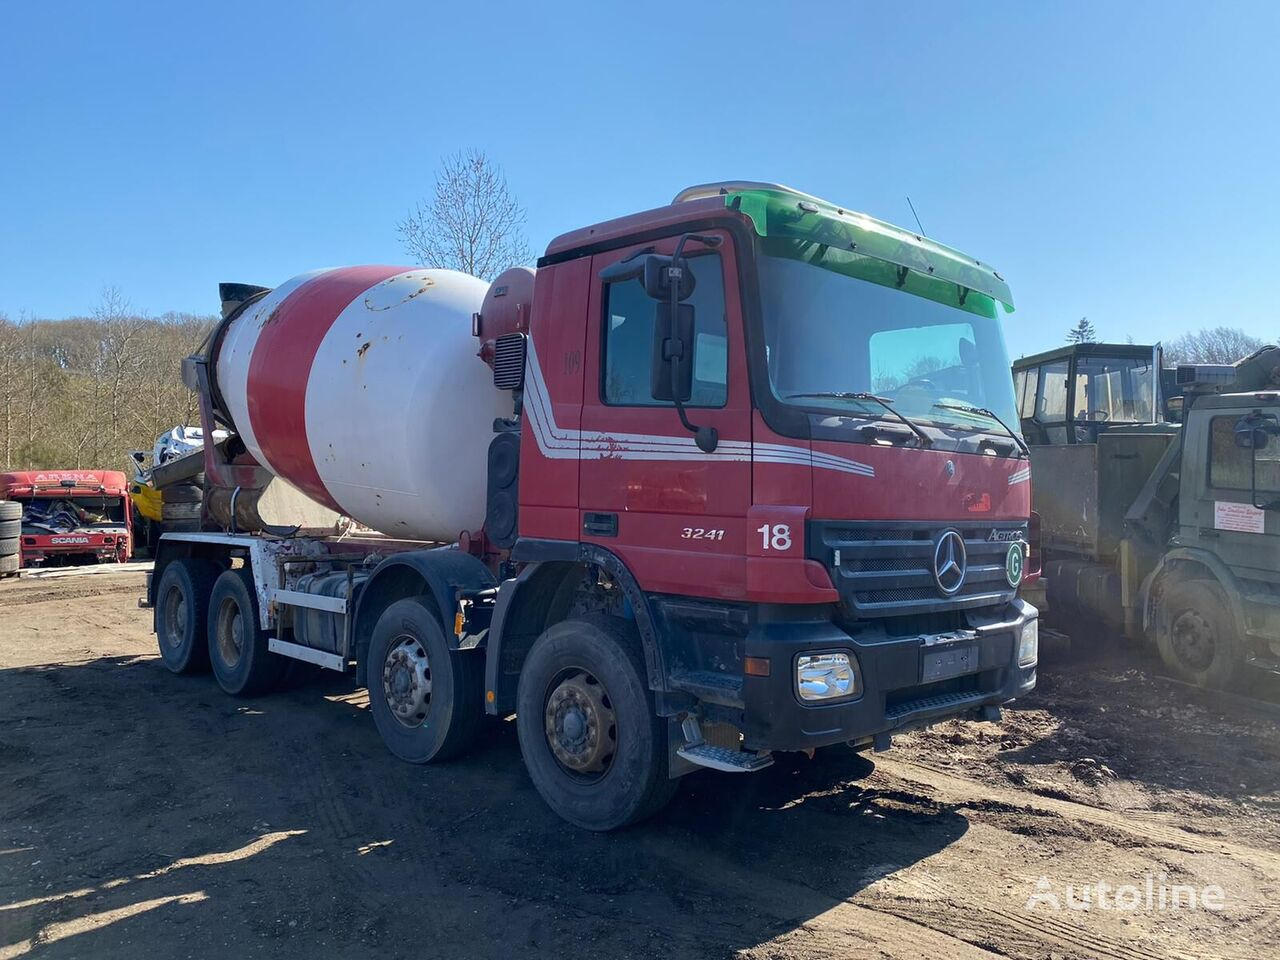 MERCEDES-BENZ Actros 3241 8x4 manual gearbox, full steel, 9 m3 cement tank truck